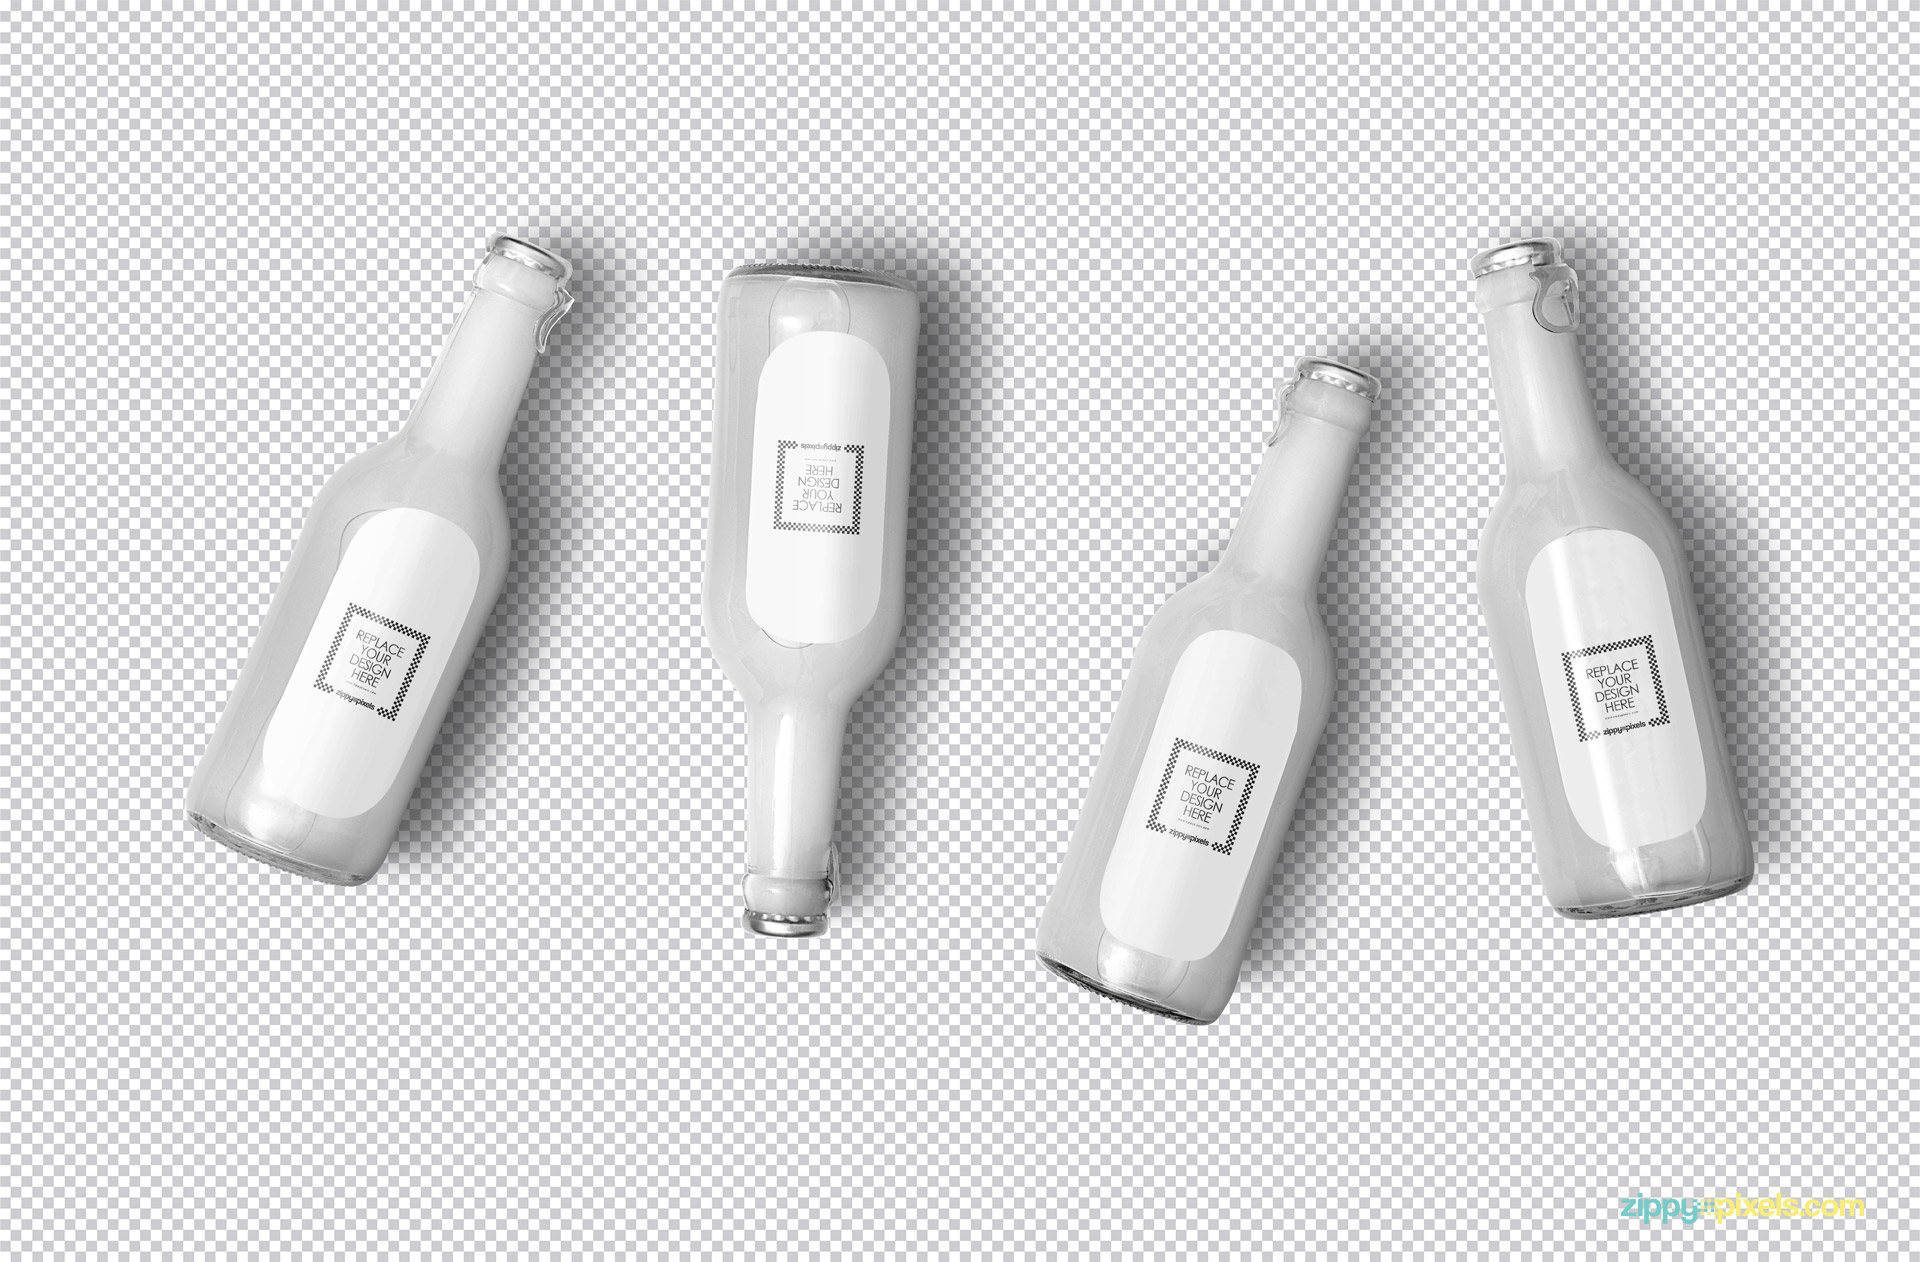 Plain white bottle mockup.